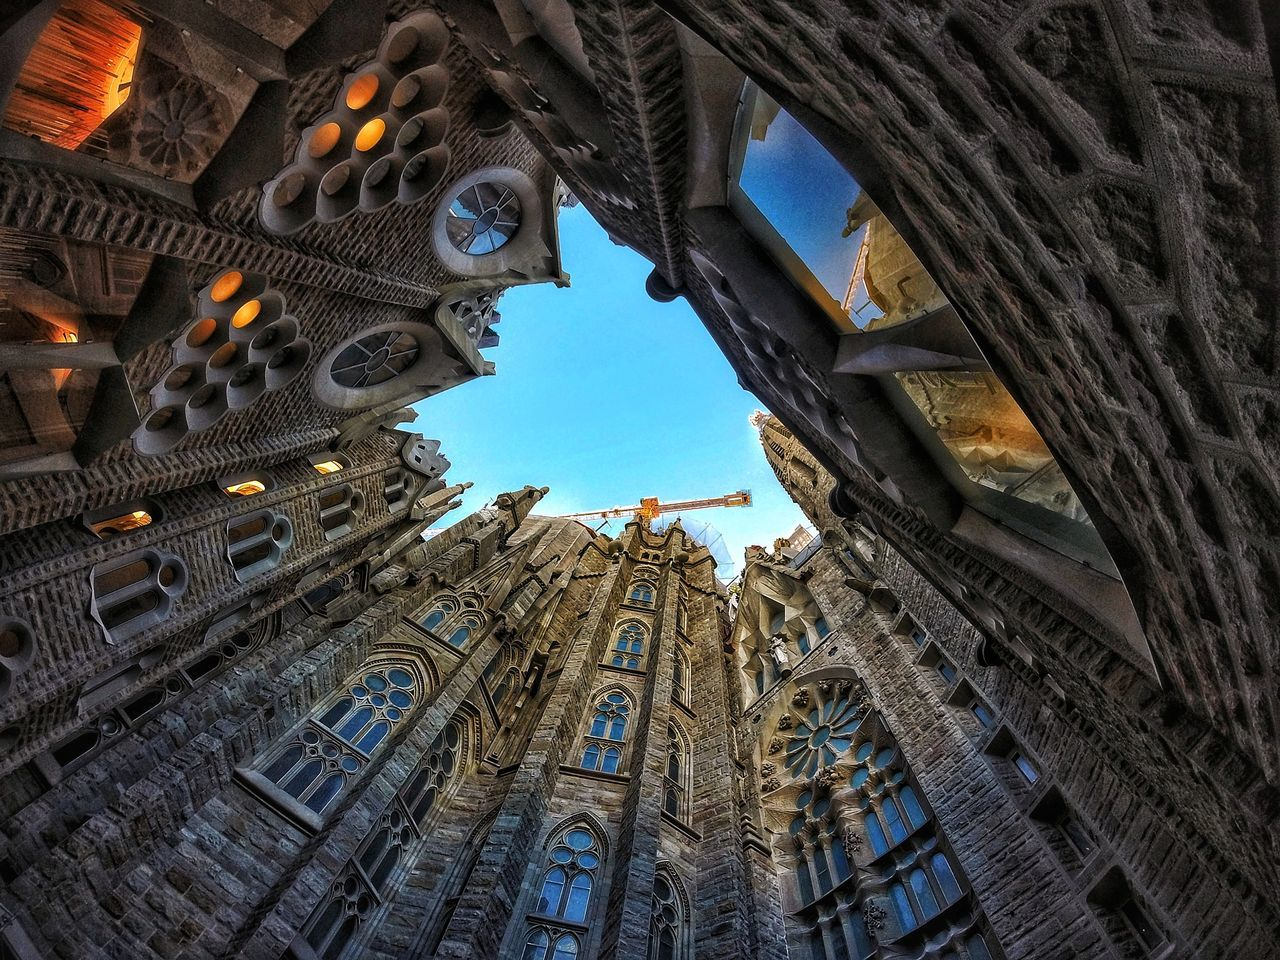 Low Angle View Architecture Sky Built Structure Building Exterior Day Outdoors Skyscraper No People Modern City Sagrada Familia Sagradafamilia Sagradafamiliabarcelona Sagradafamiliachurch Ancient The Past Tourism Nikond3300 Light And Shadow Scenics EyeEm Best Shots Travel Architecture Travel Destinations The Architect - 2017 EyeEm Awards